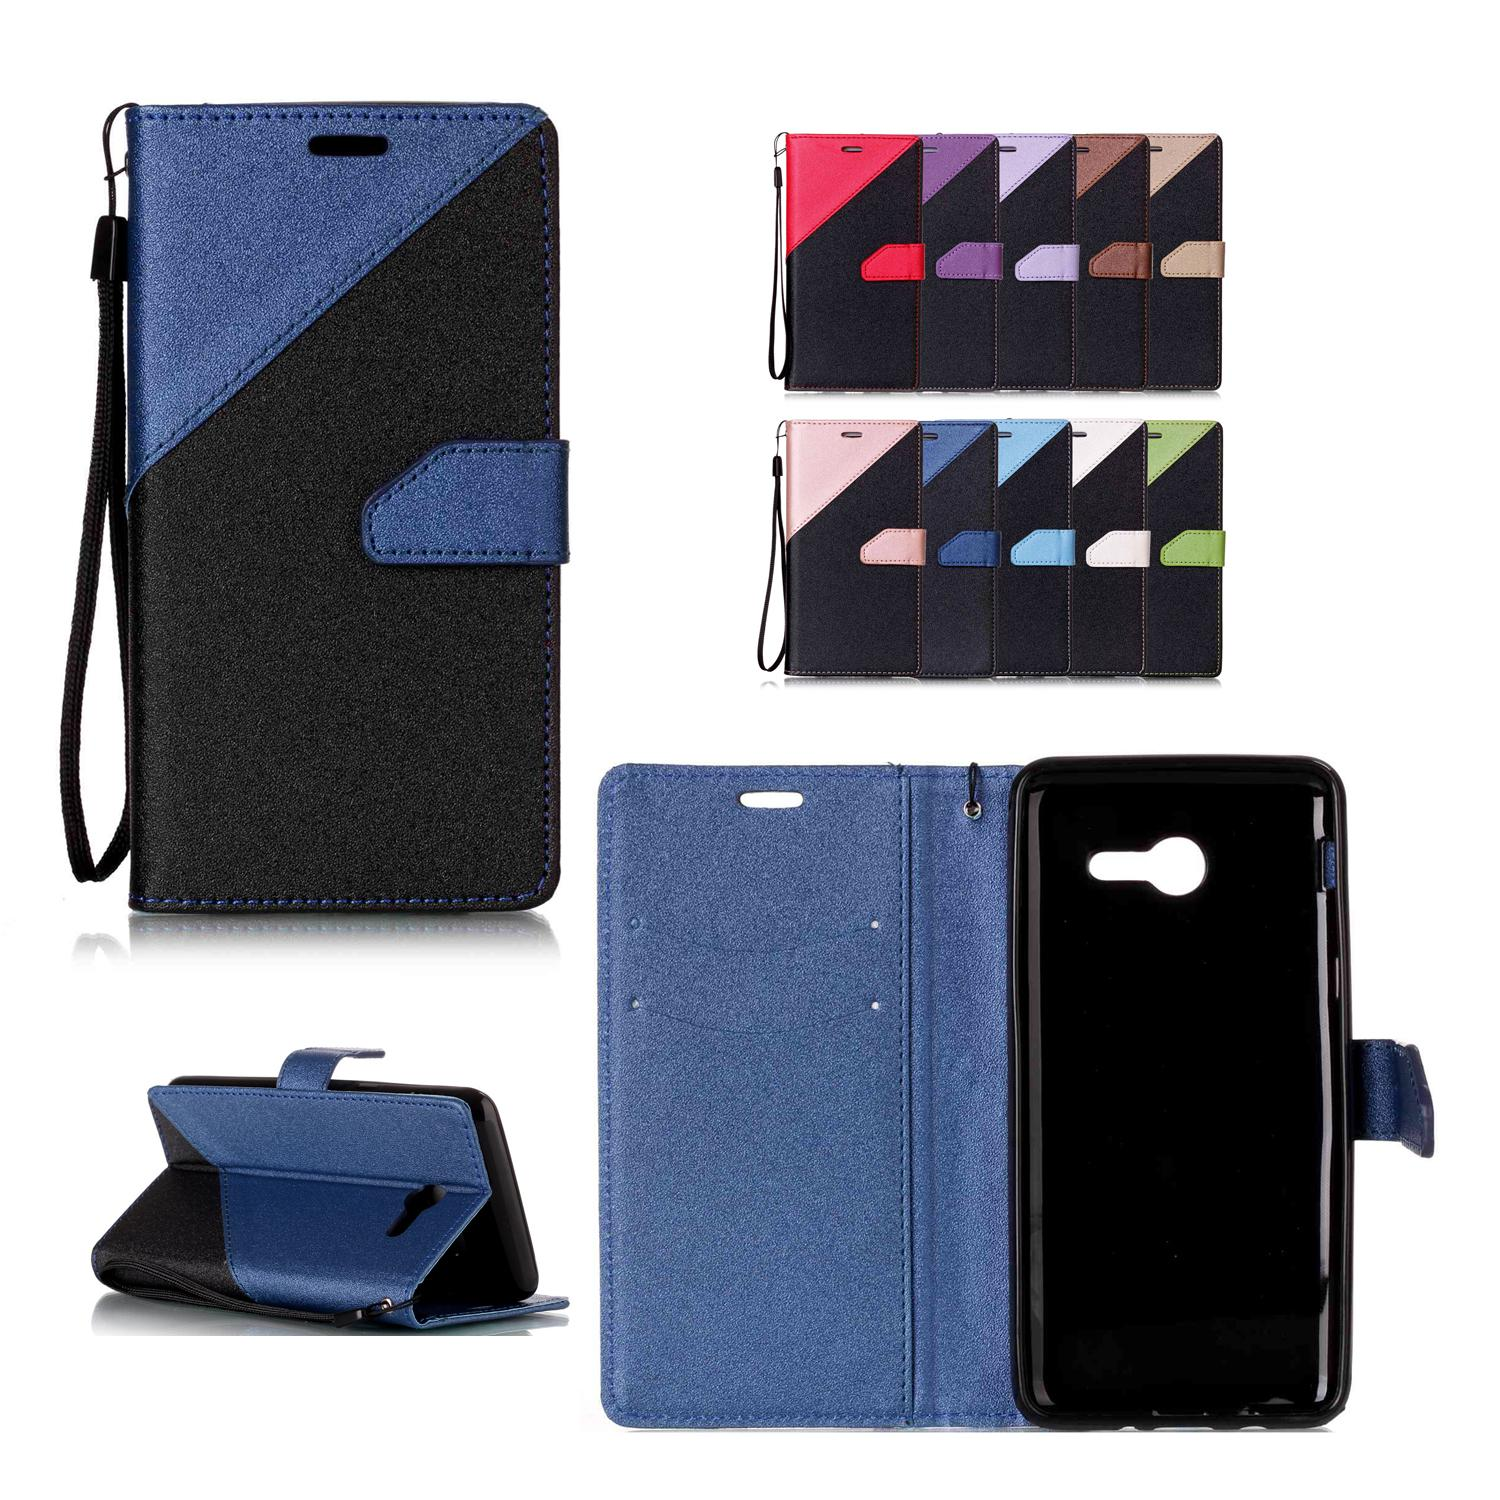 Phone Cases Covers for Samsung Galaxy J520 J5 2017 PU Leather with Card Slot Hand Strap Sand Beach Surface Design Galaxy J5 2017 Case Galaxy J5 Cover Galaxy